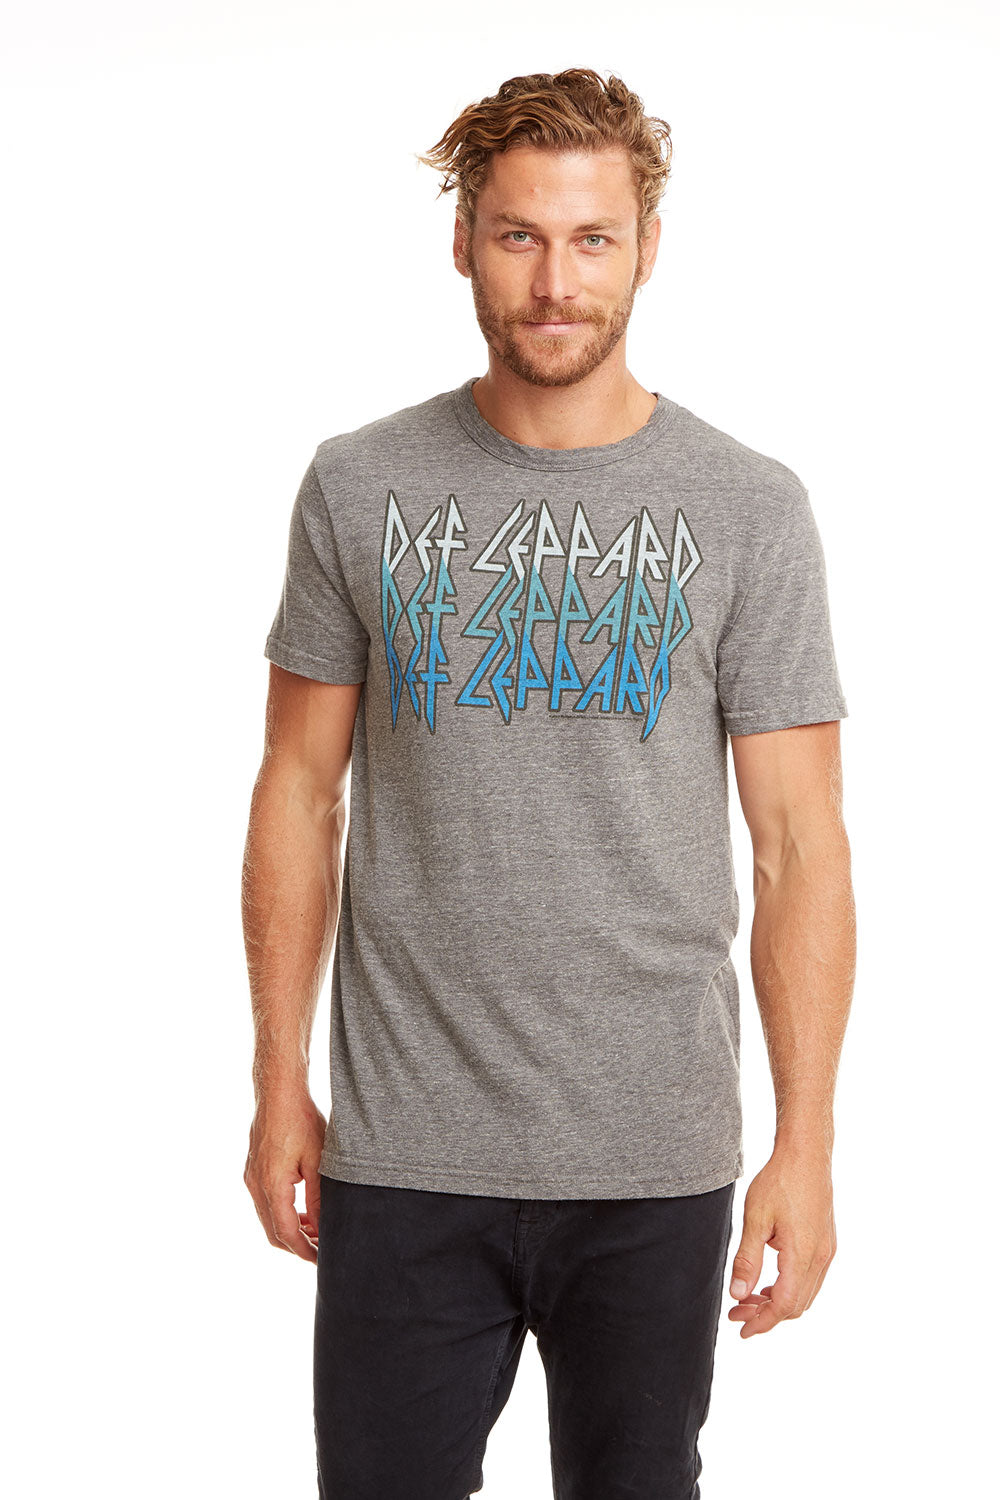 Def Leppard - Leppard Blues MENS chaserbrand4.myshopify.com